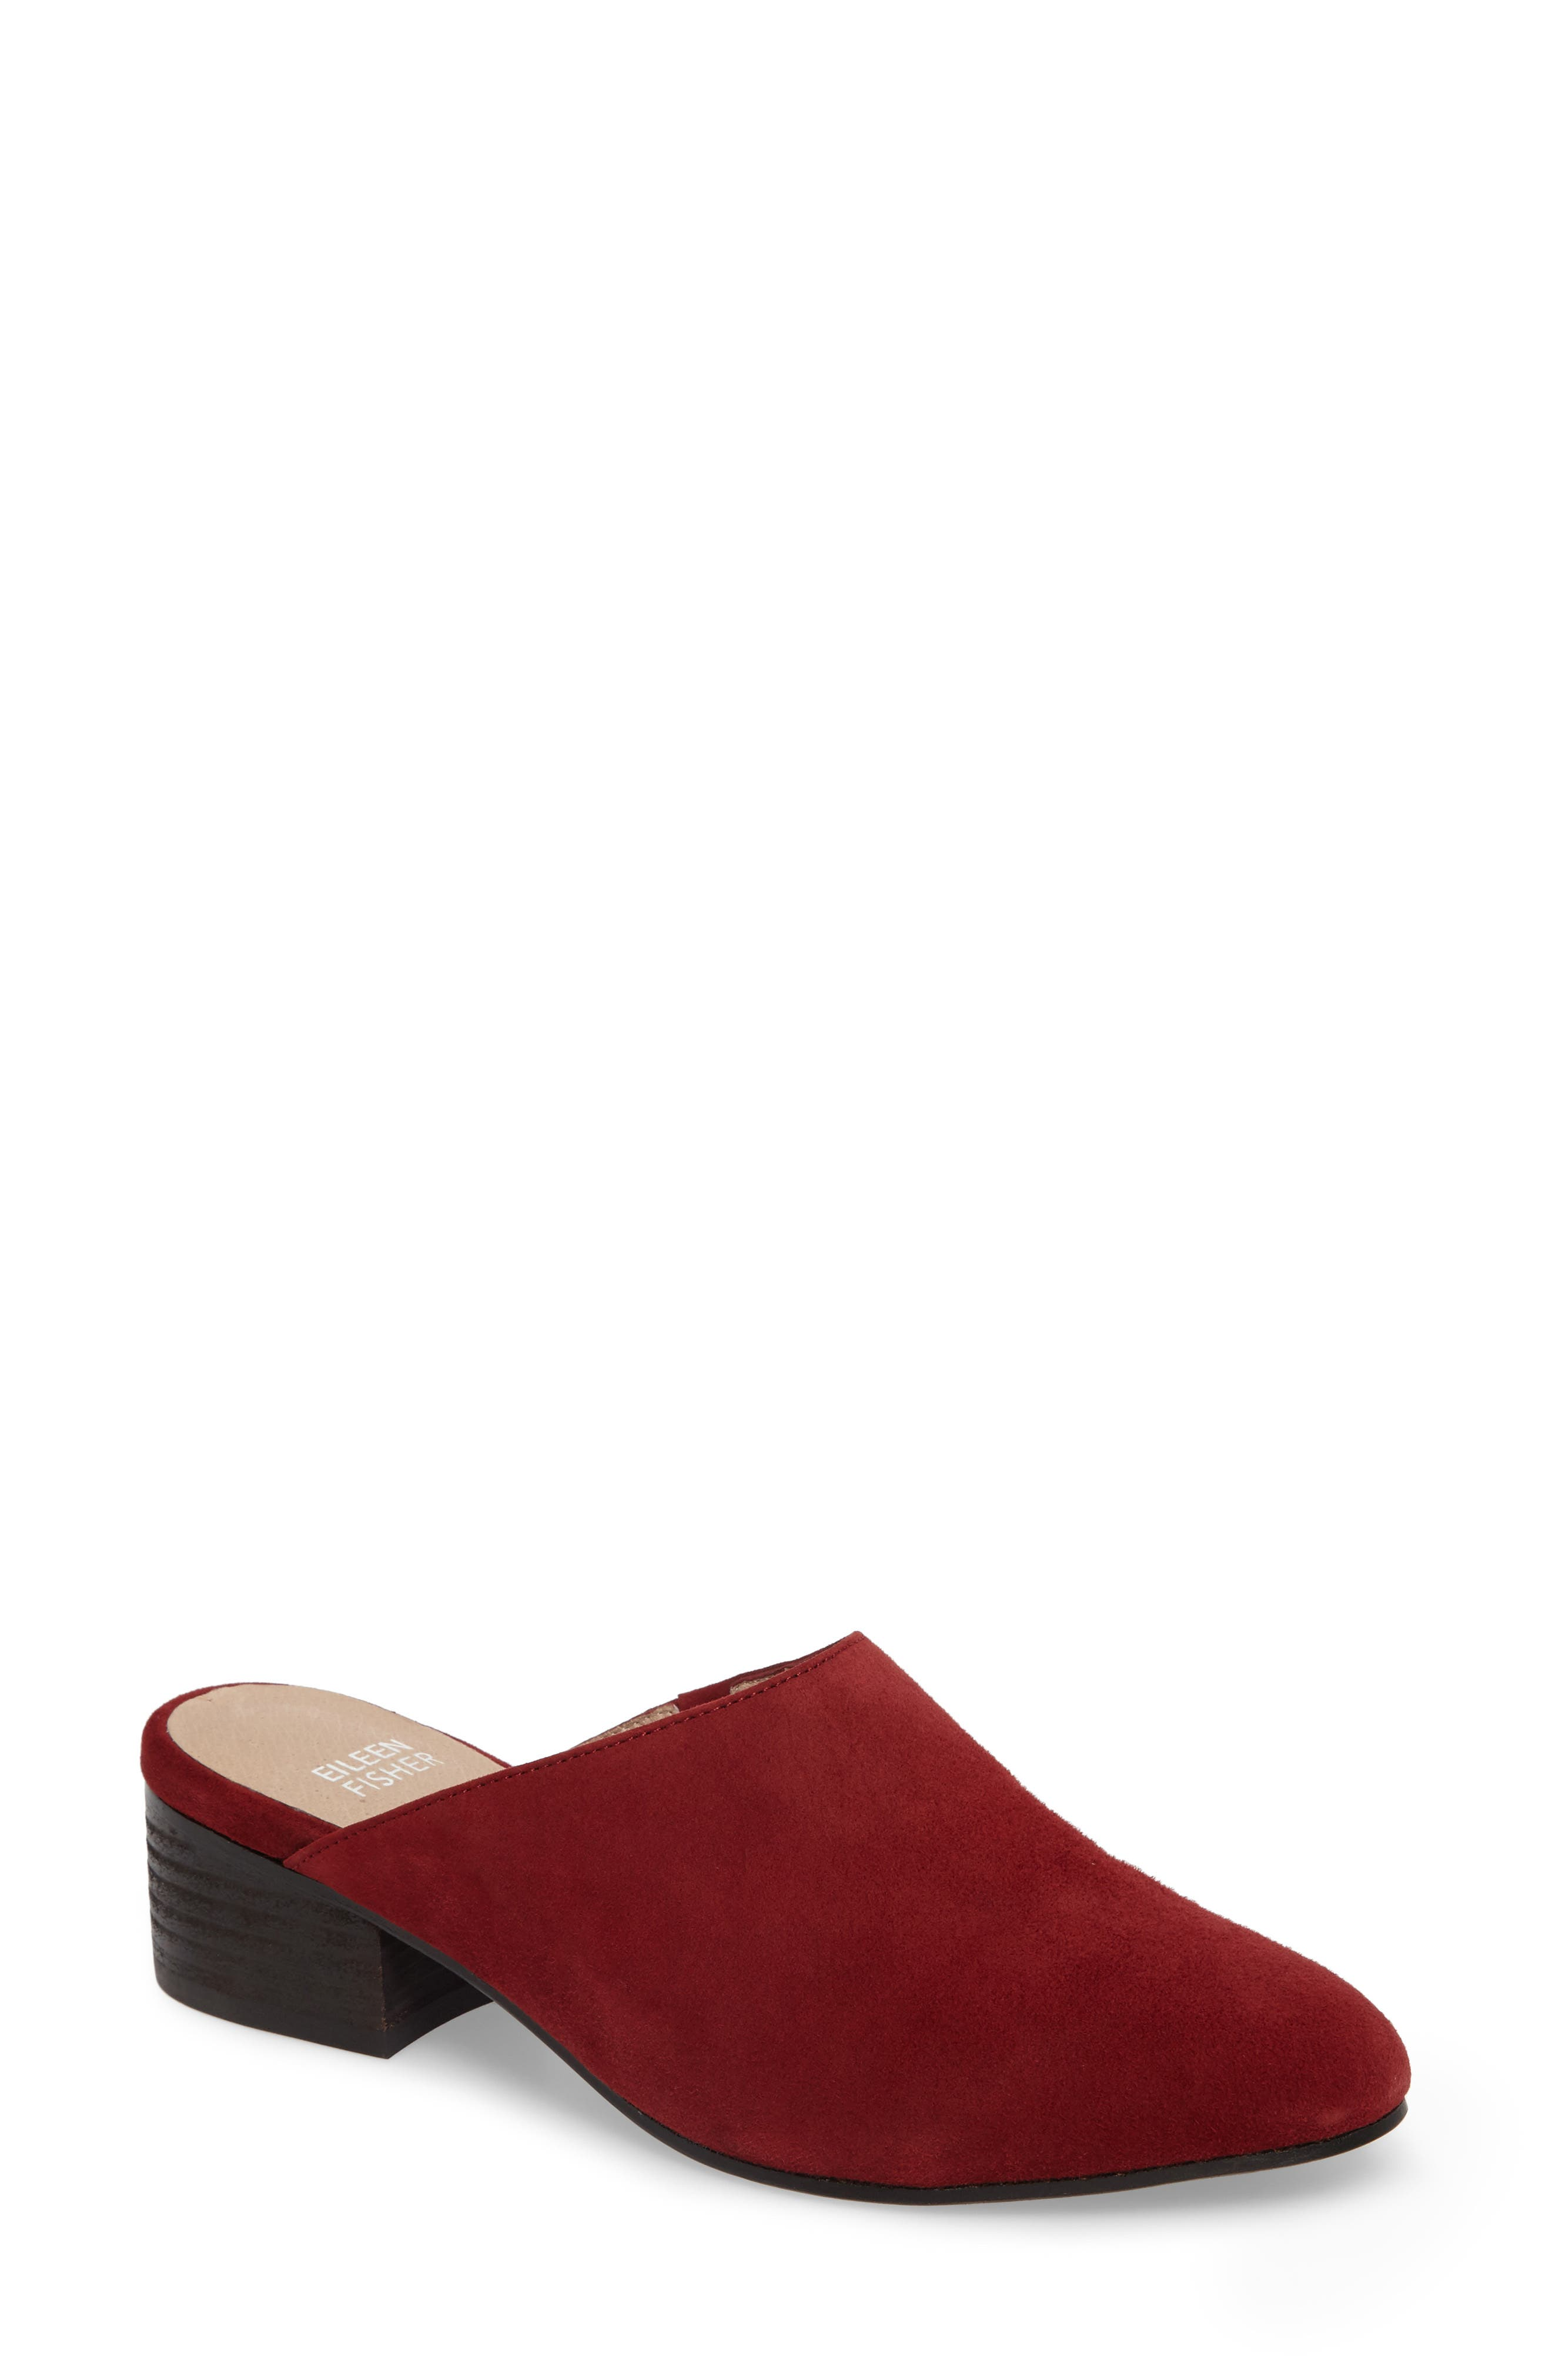 Main Image - Eileen Fisher Silvia Mule (Women)